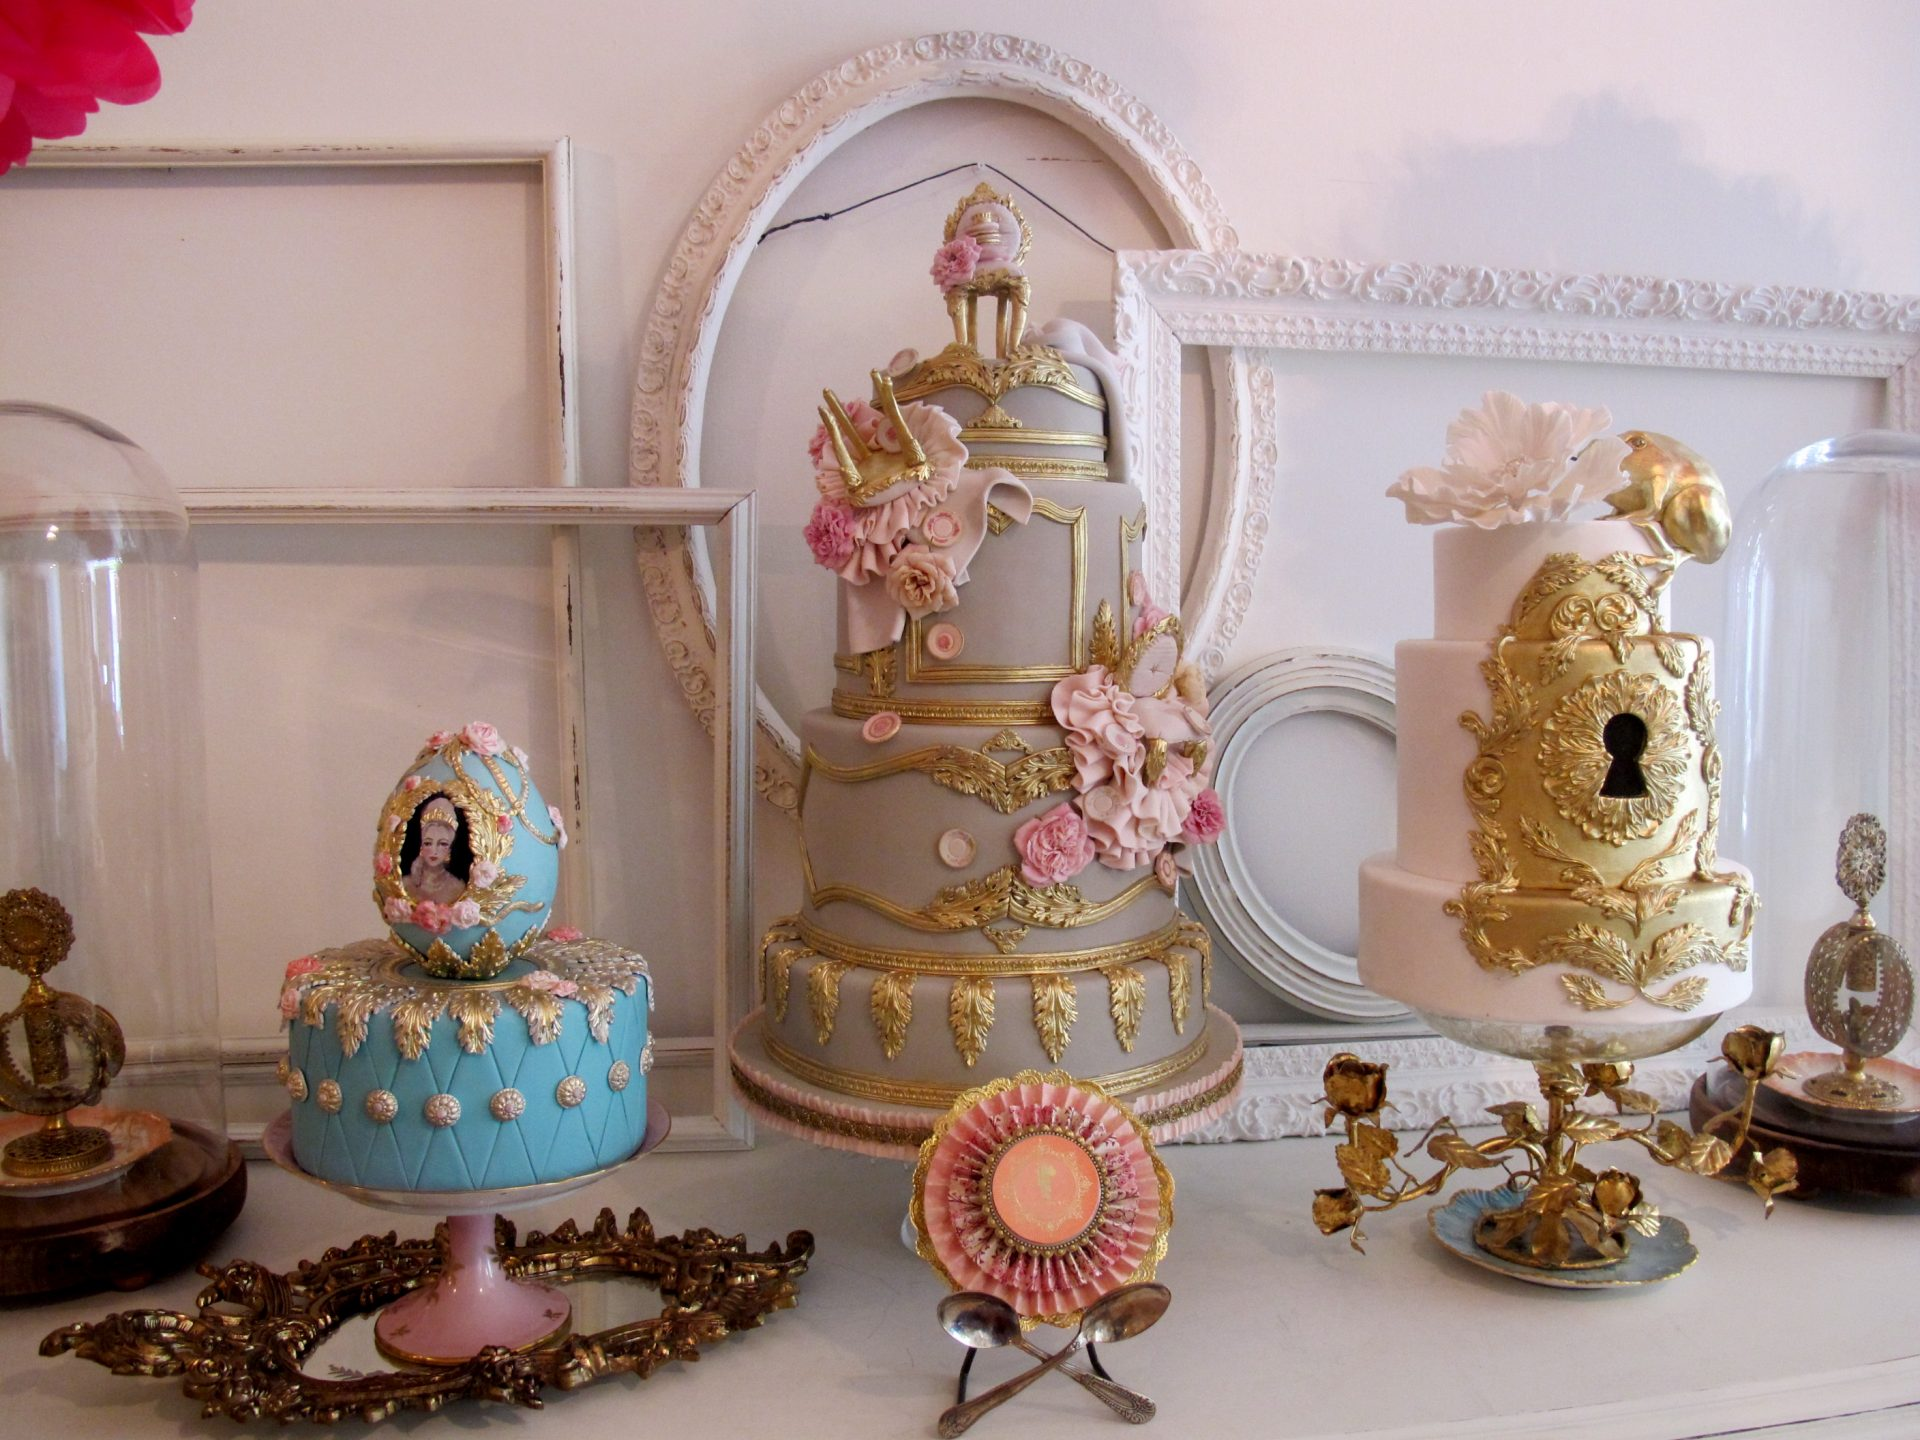 Cake Opera Co Opulent Wedding Cakes And Pastry Made By